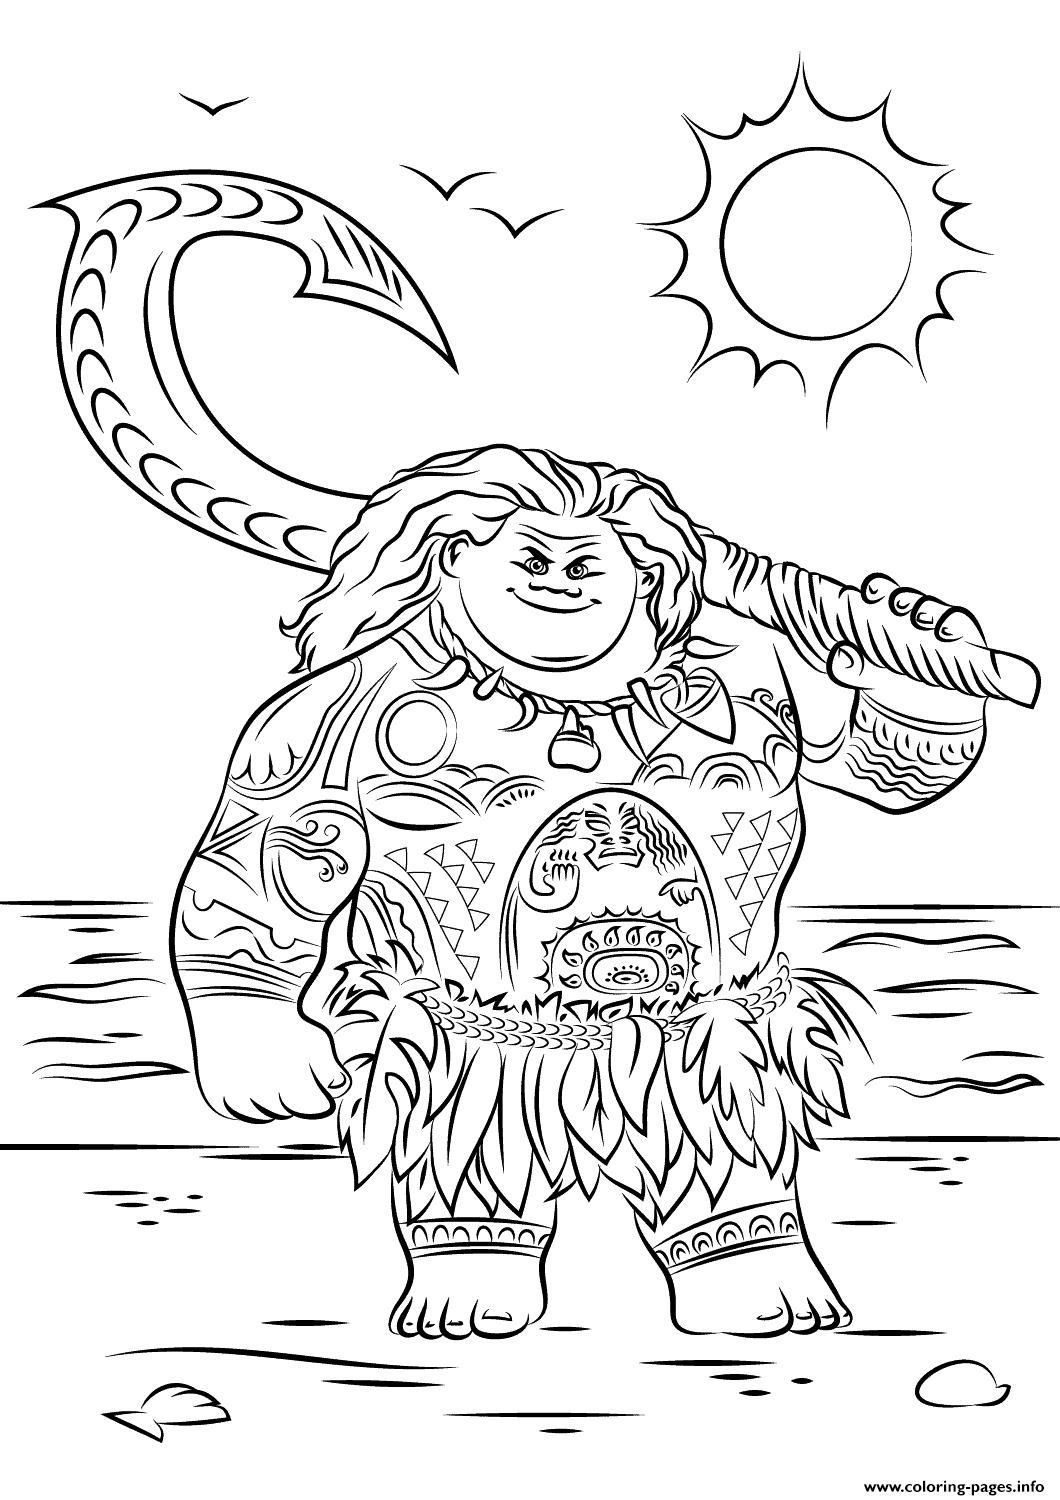 cool printable coloring pages - photo#43